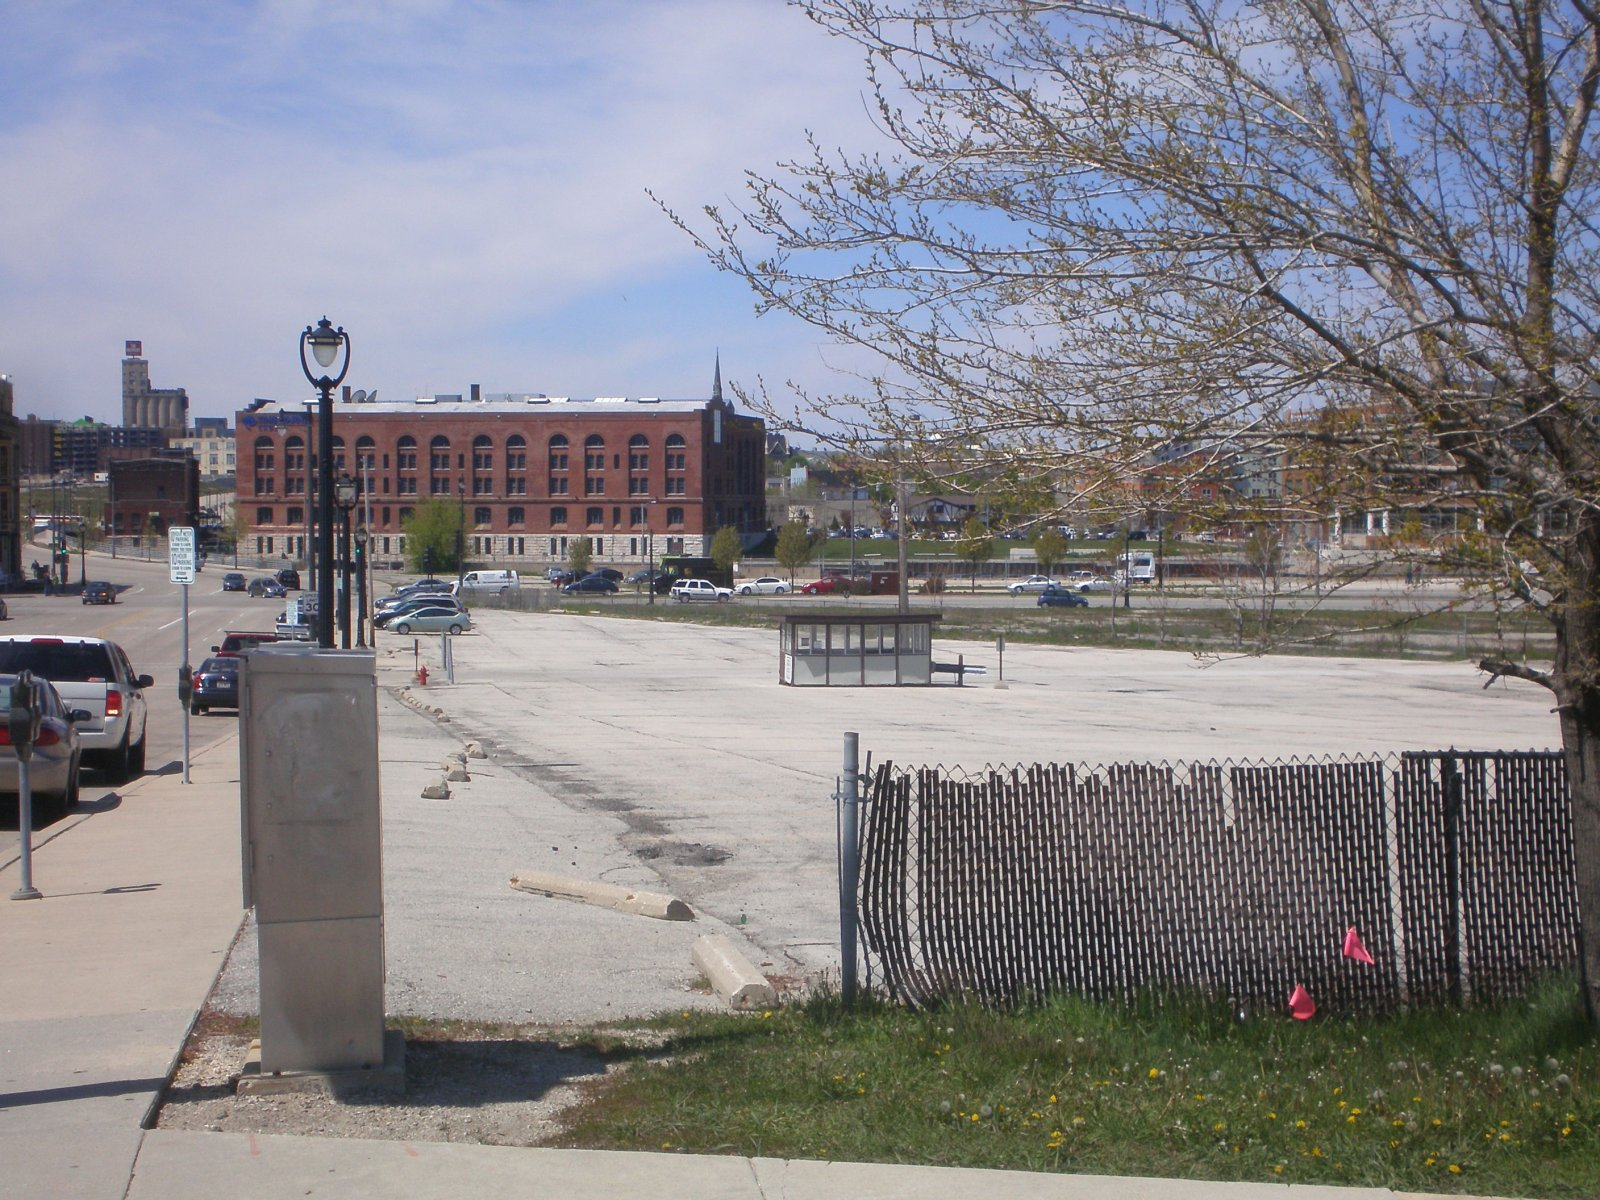 The future site of the MSOE Athletic Field and Parking Complex.